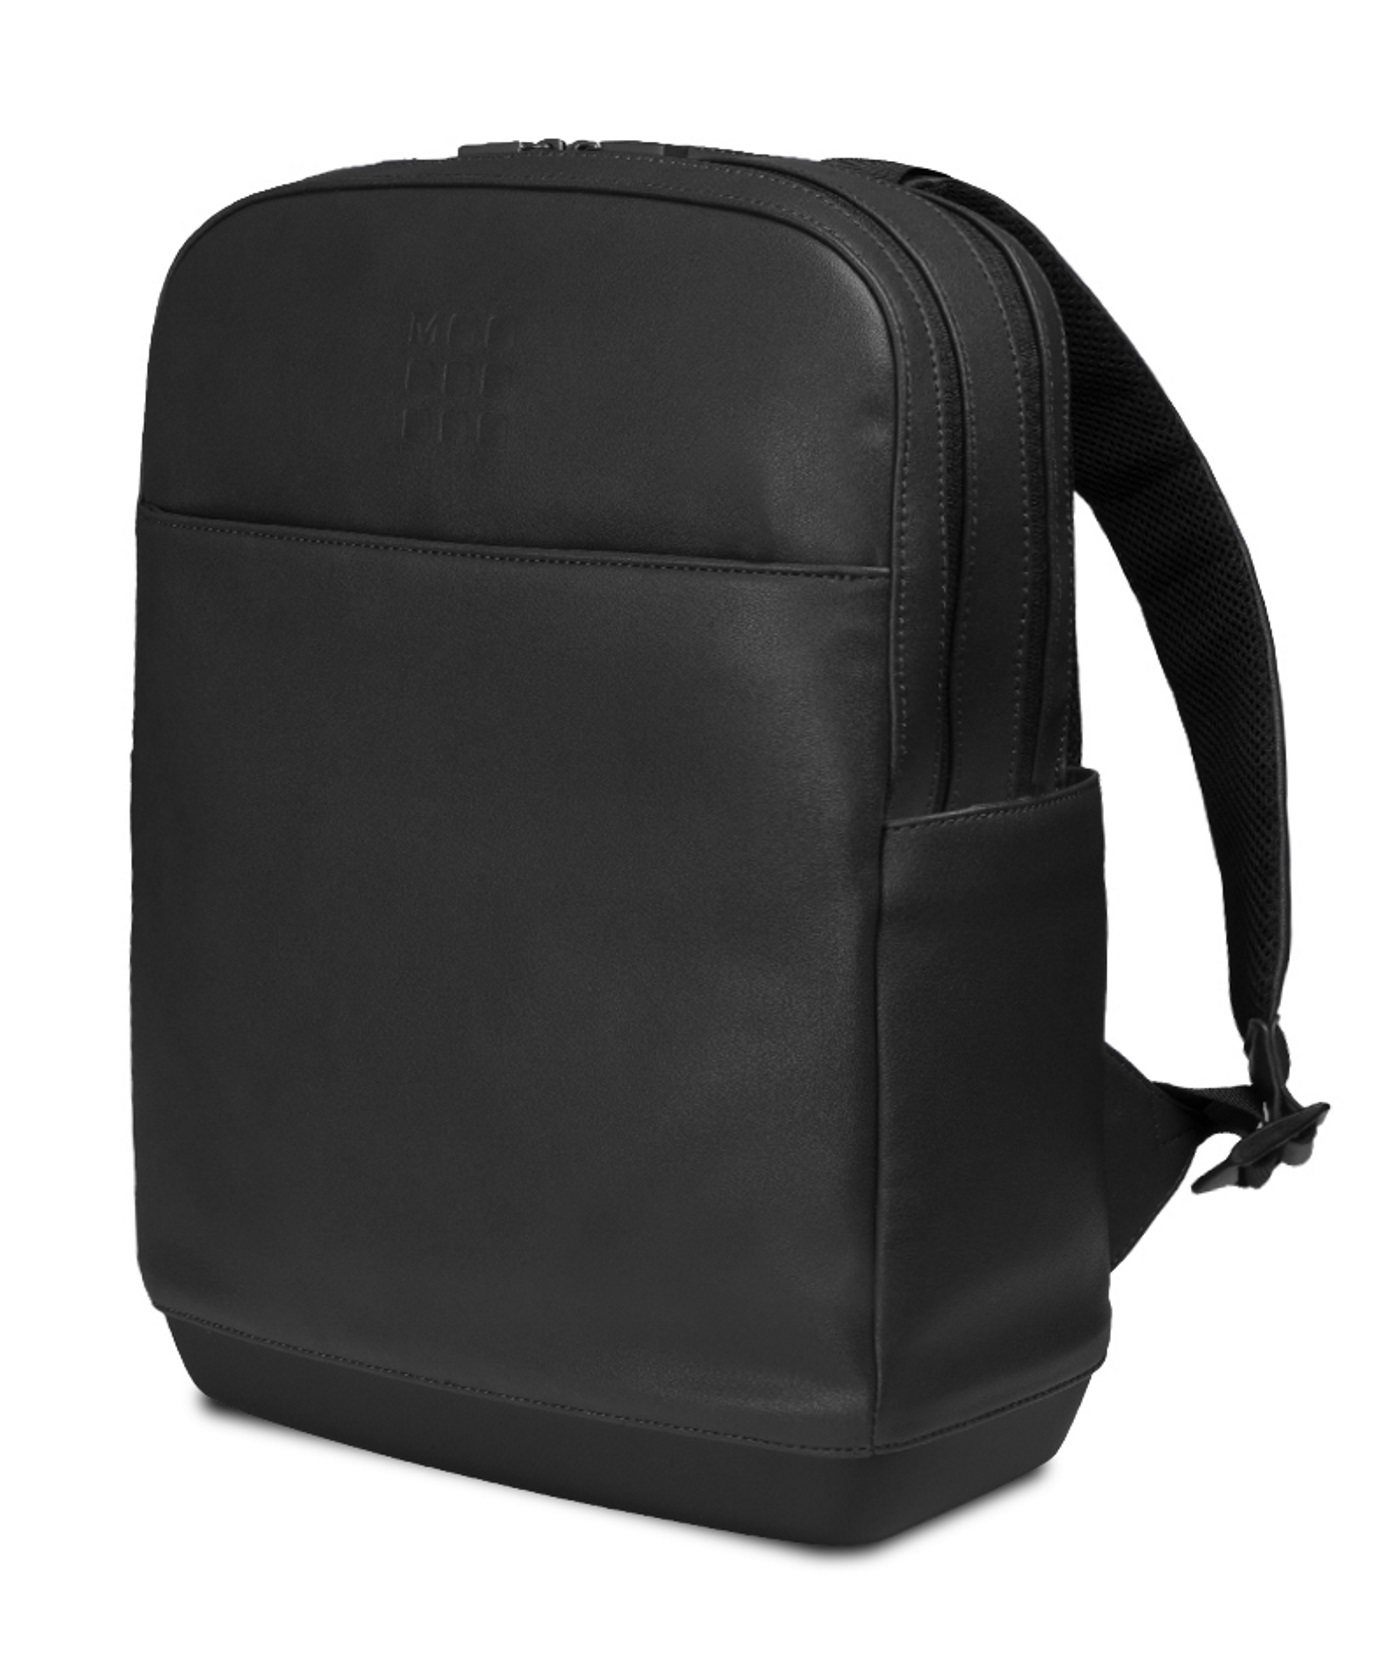 SAC A DOS COLLECTION CLASSIC PRO